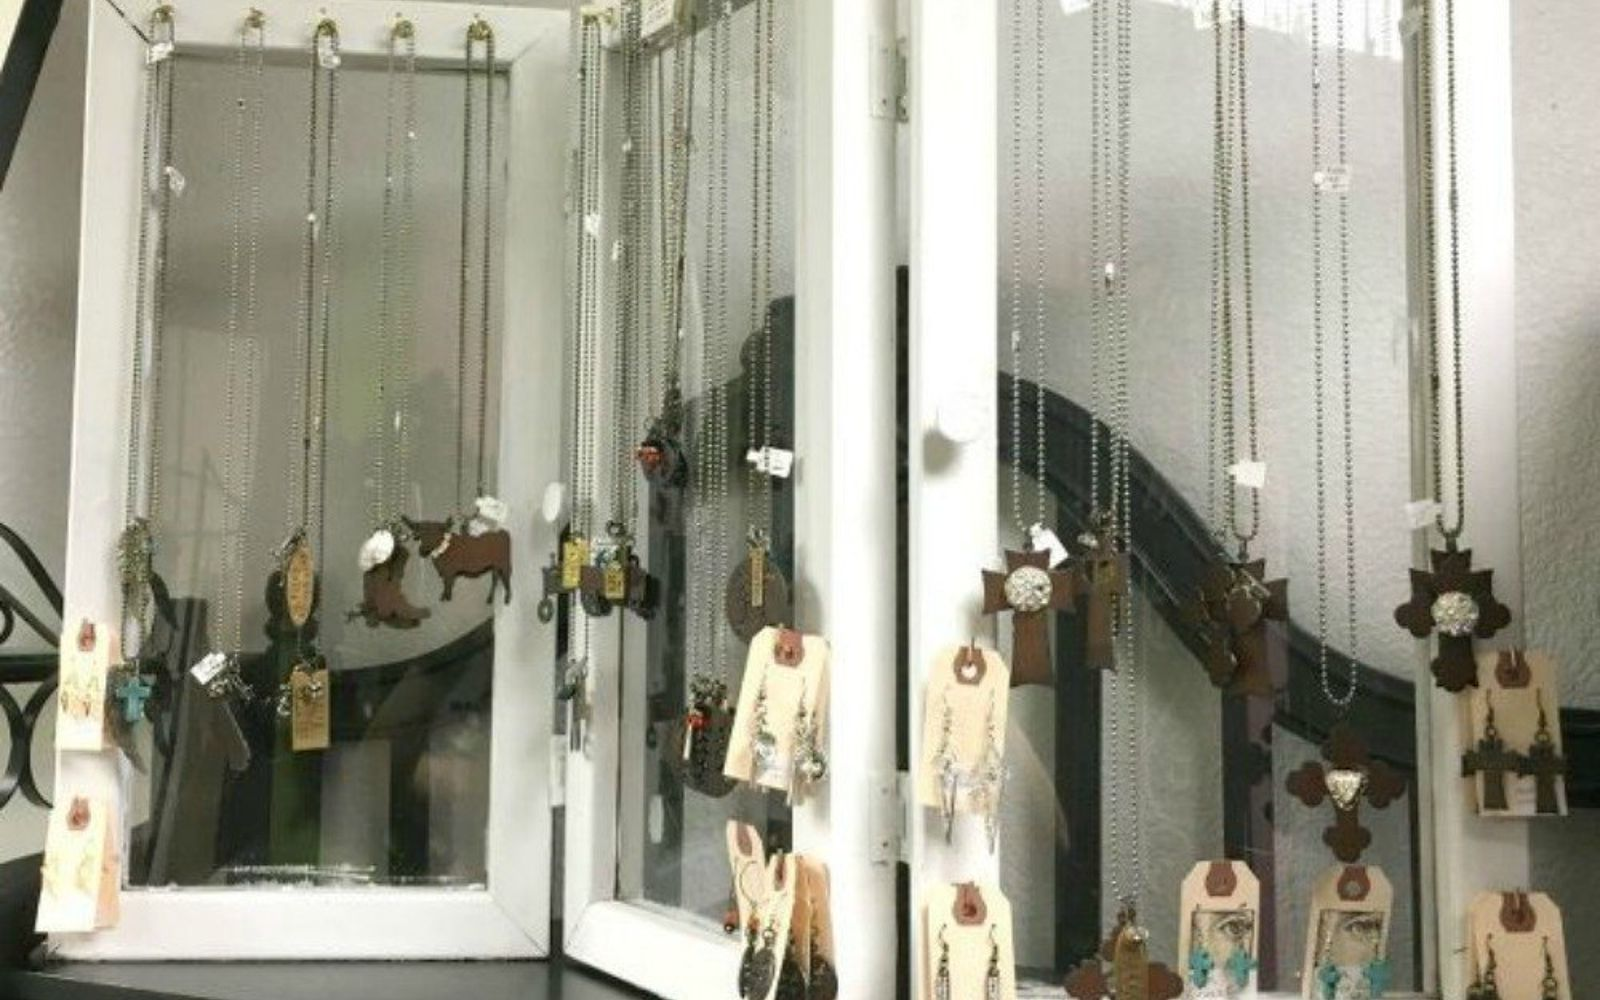 s 21 jewelry organizing ideas that are better than a jewelry box, organizing, These hinged window panes